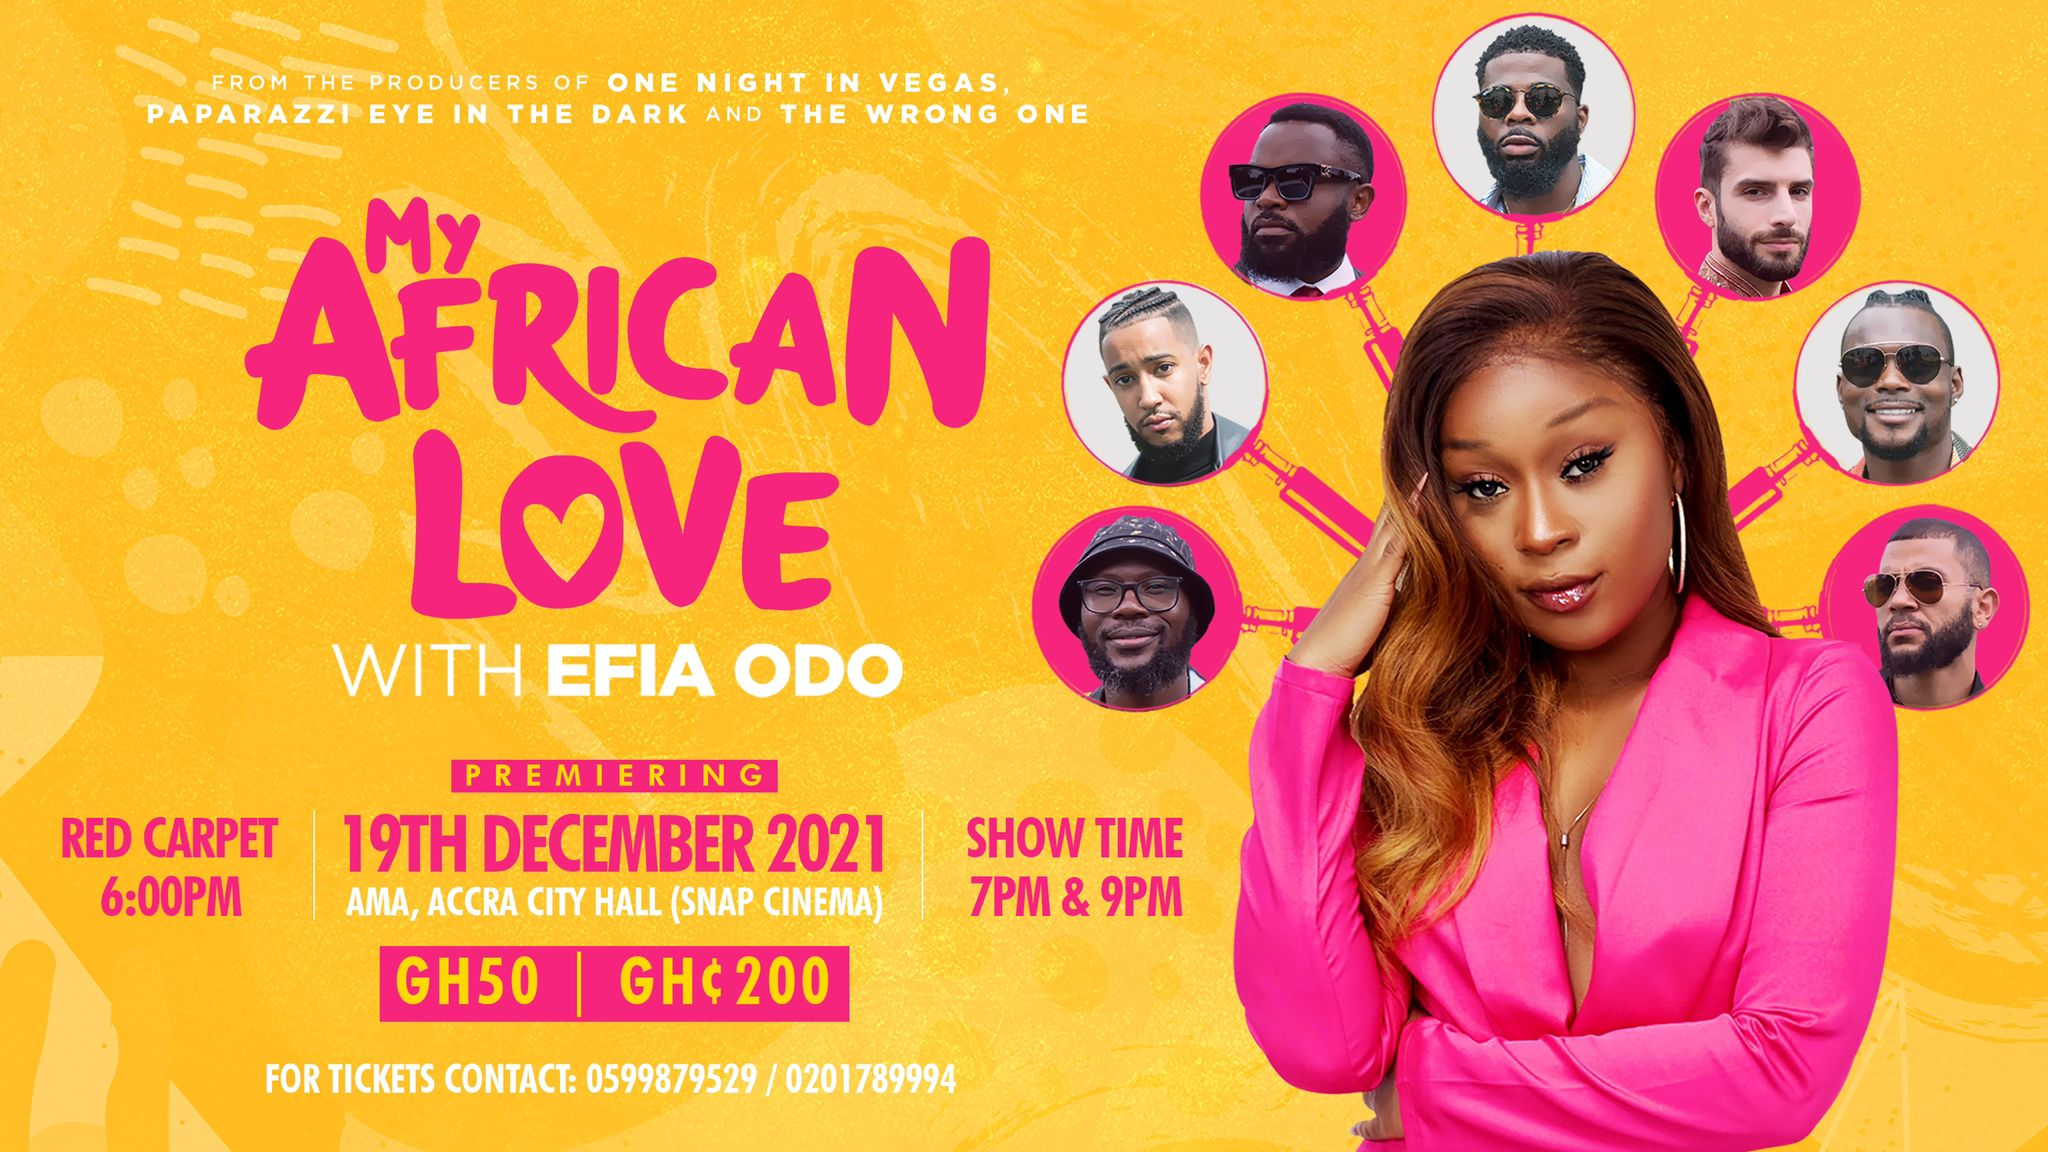 My African Love with Efia Odo